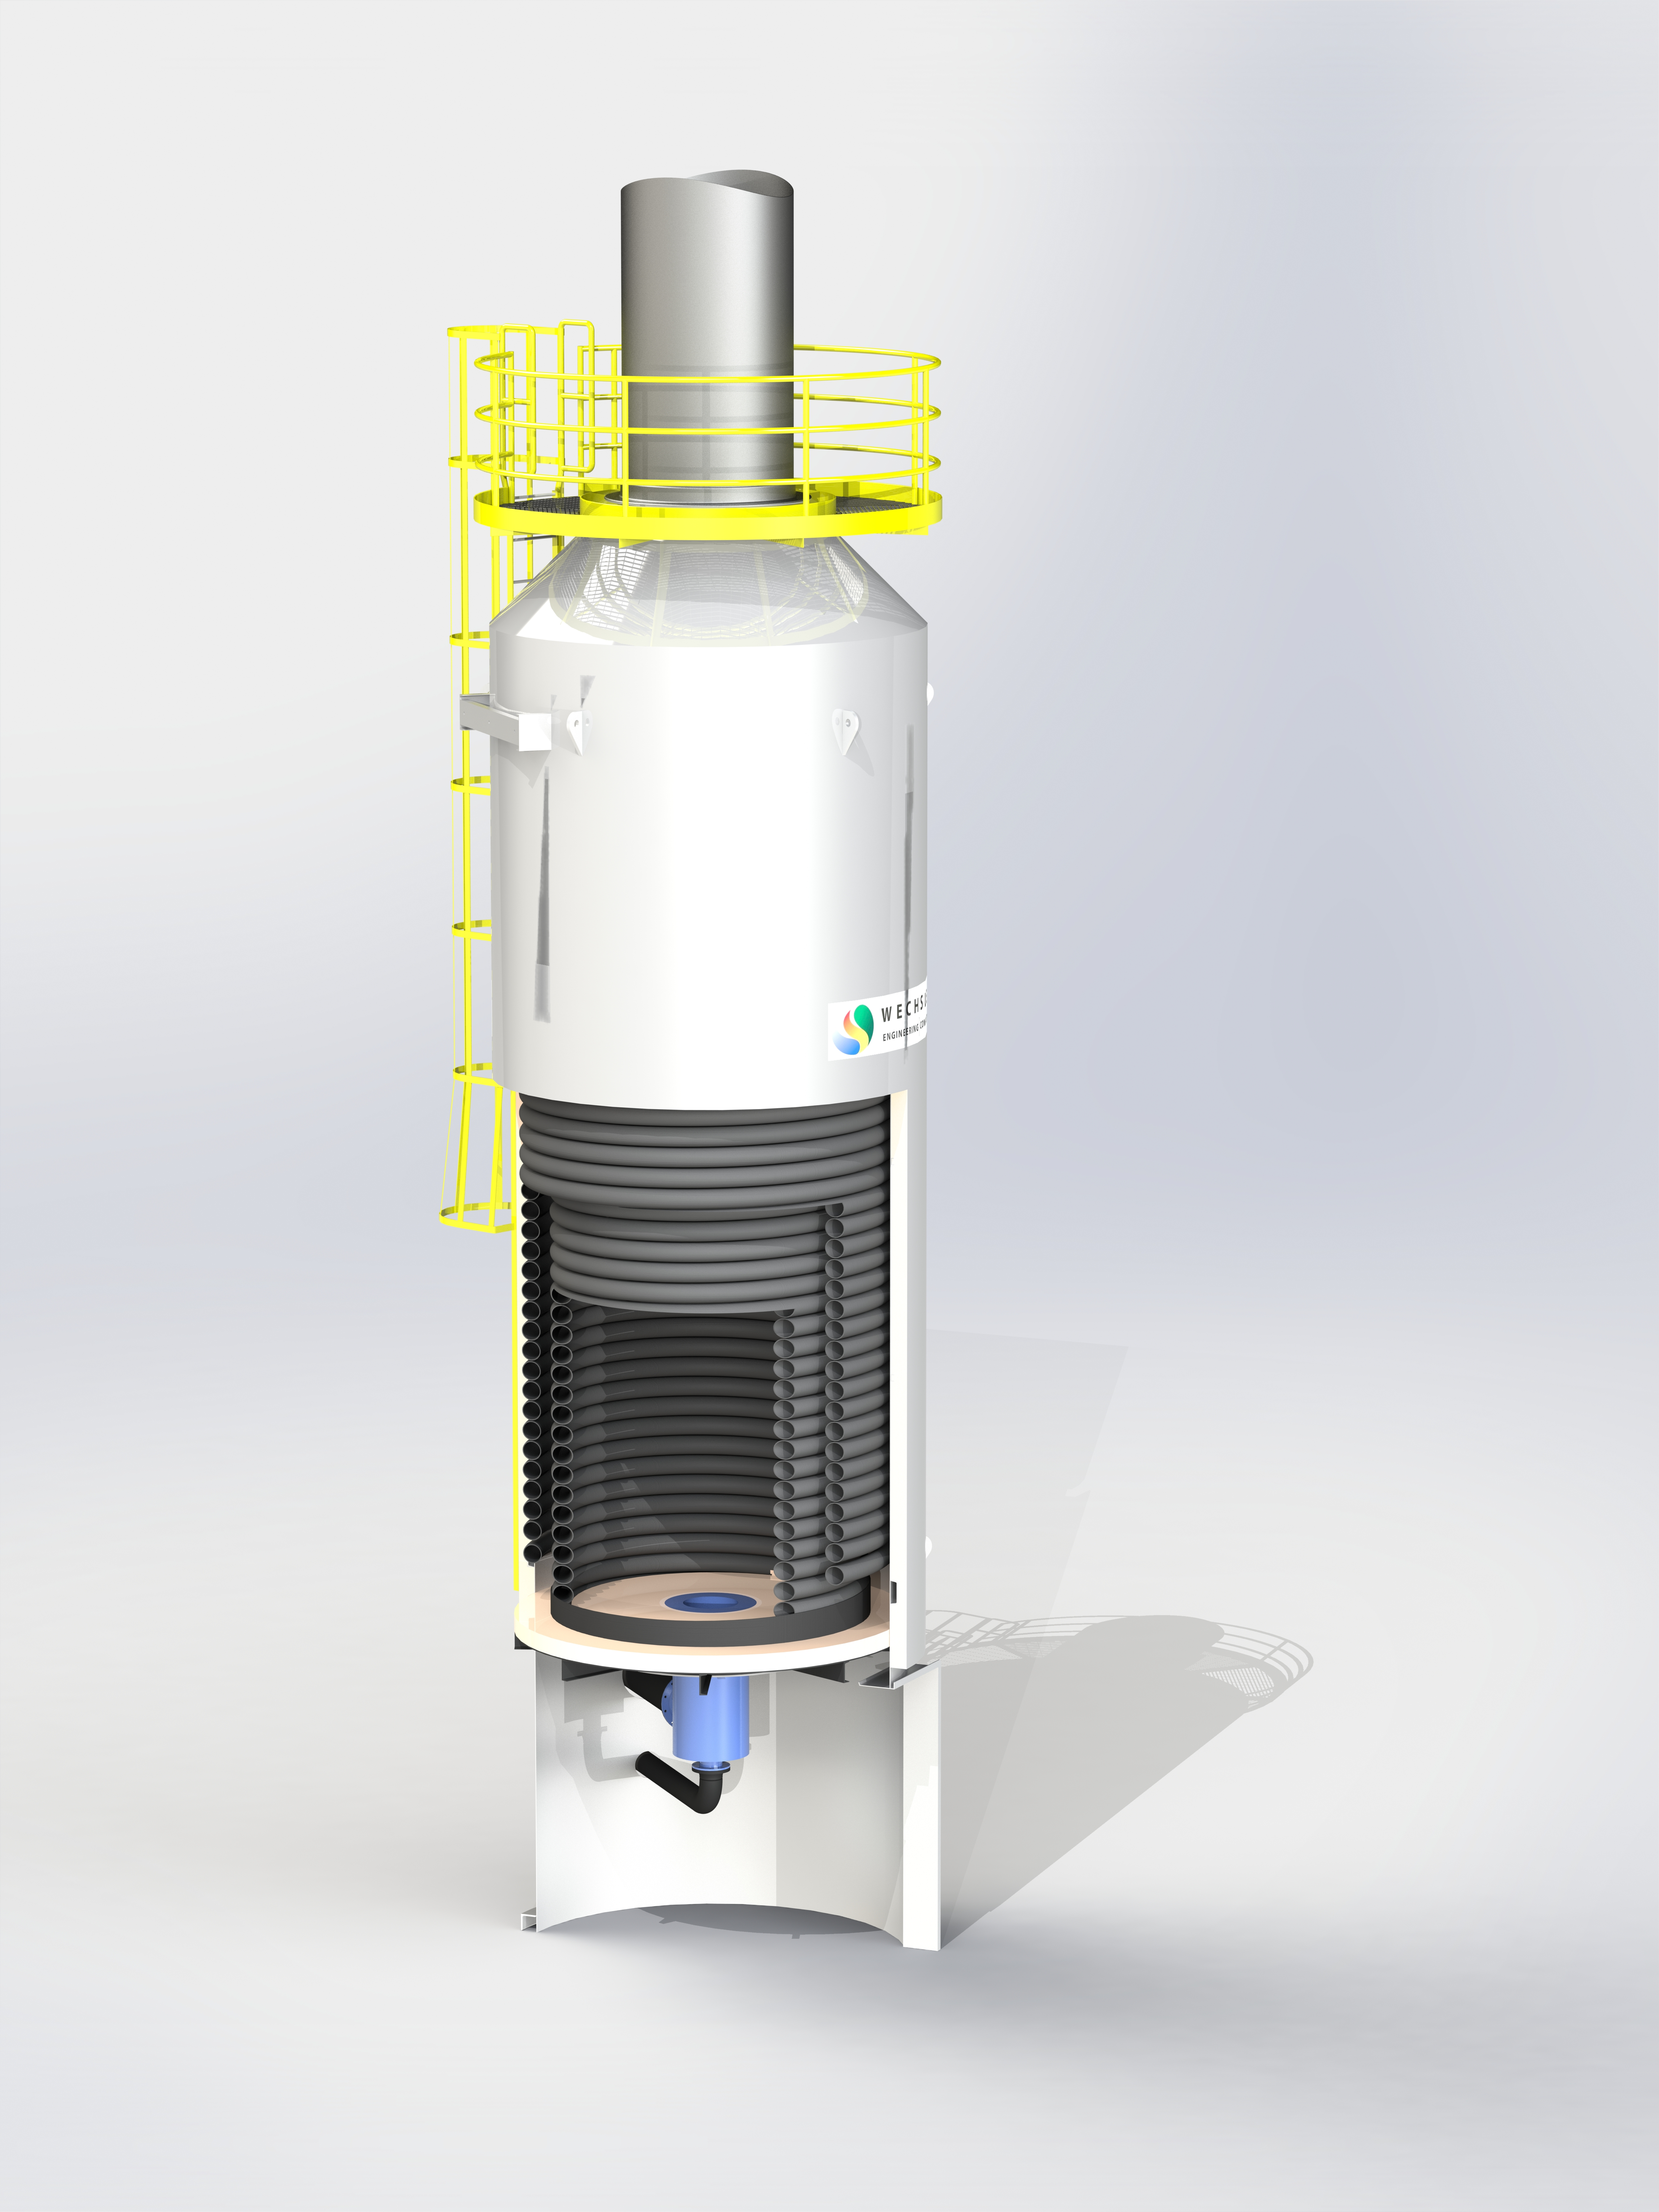 Opti-Therm Thermal Fluid Heater